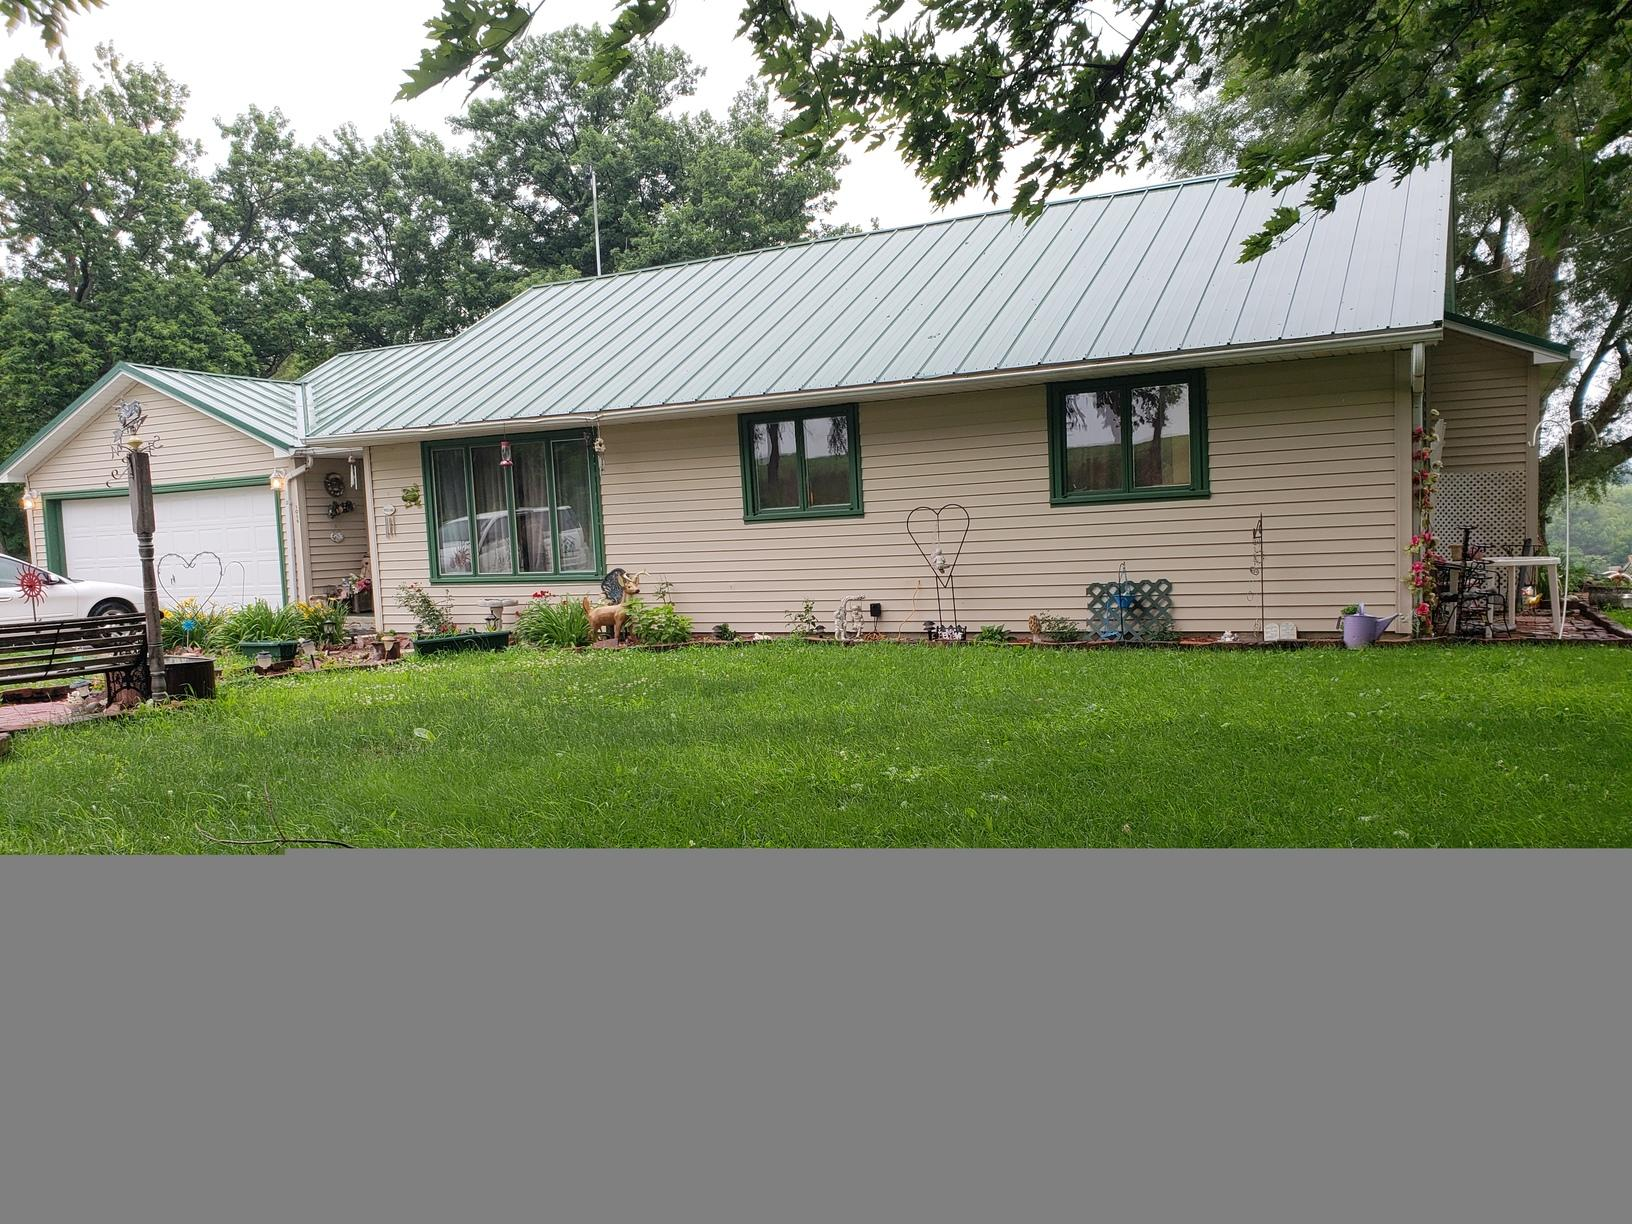 Gutters Installed on Home with a Metal Roof in Tabor, IA - Before Photo